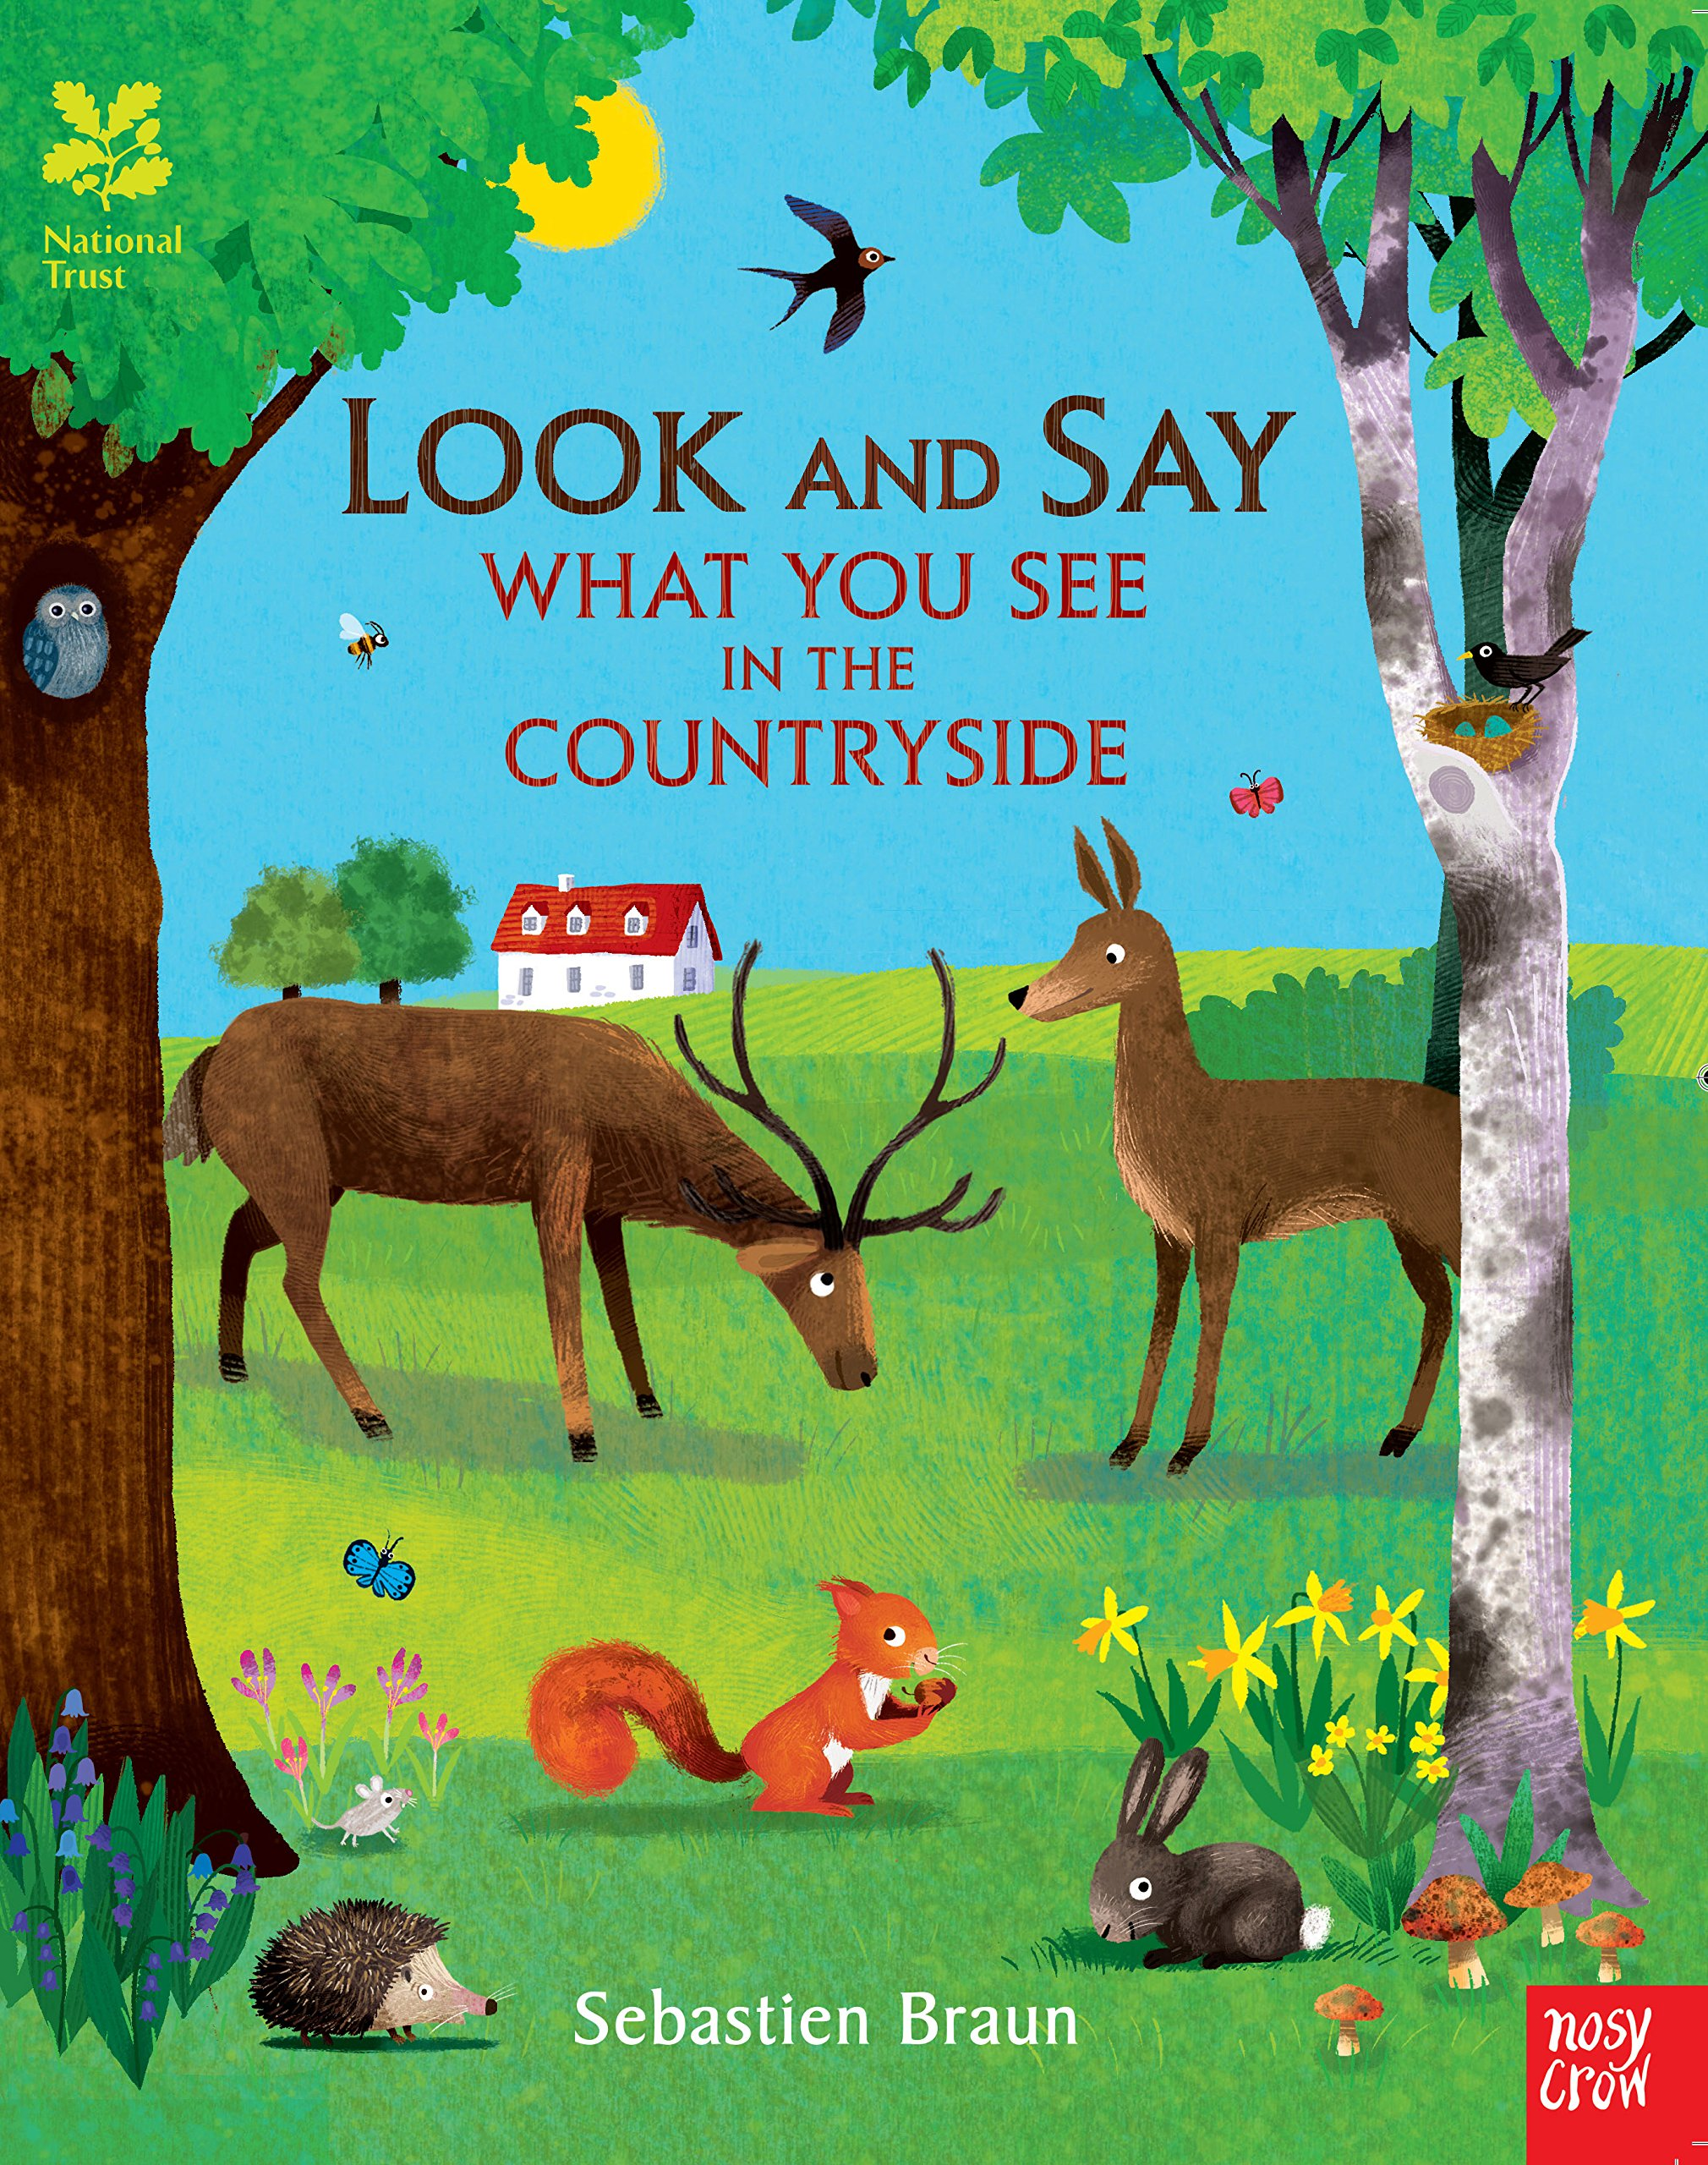 Look and Say What You See in the Countryside